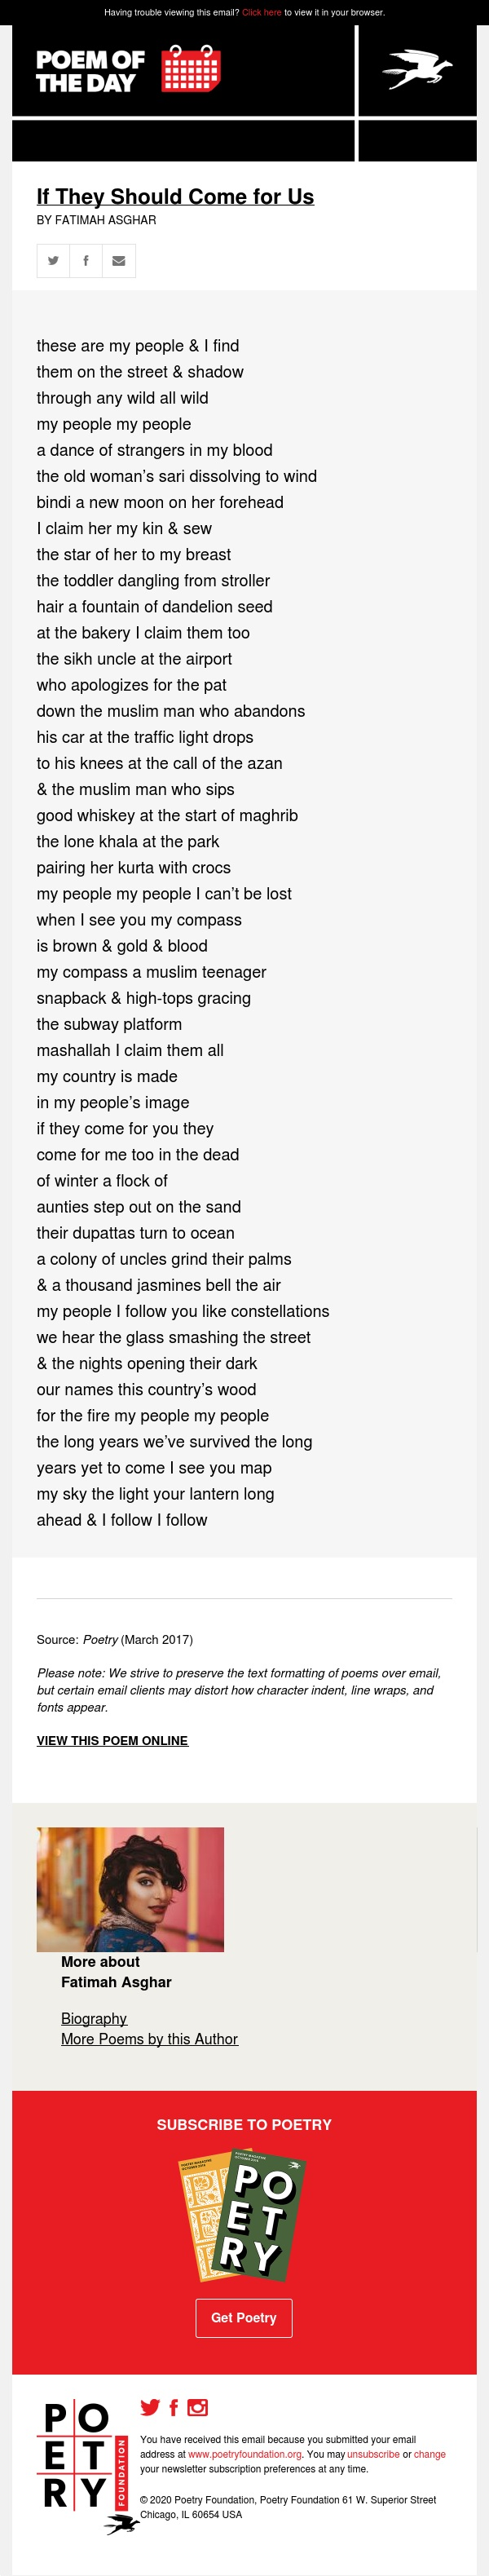 Poem of the Day: If They Should Come for Us